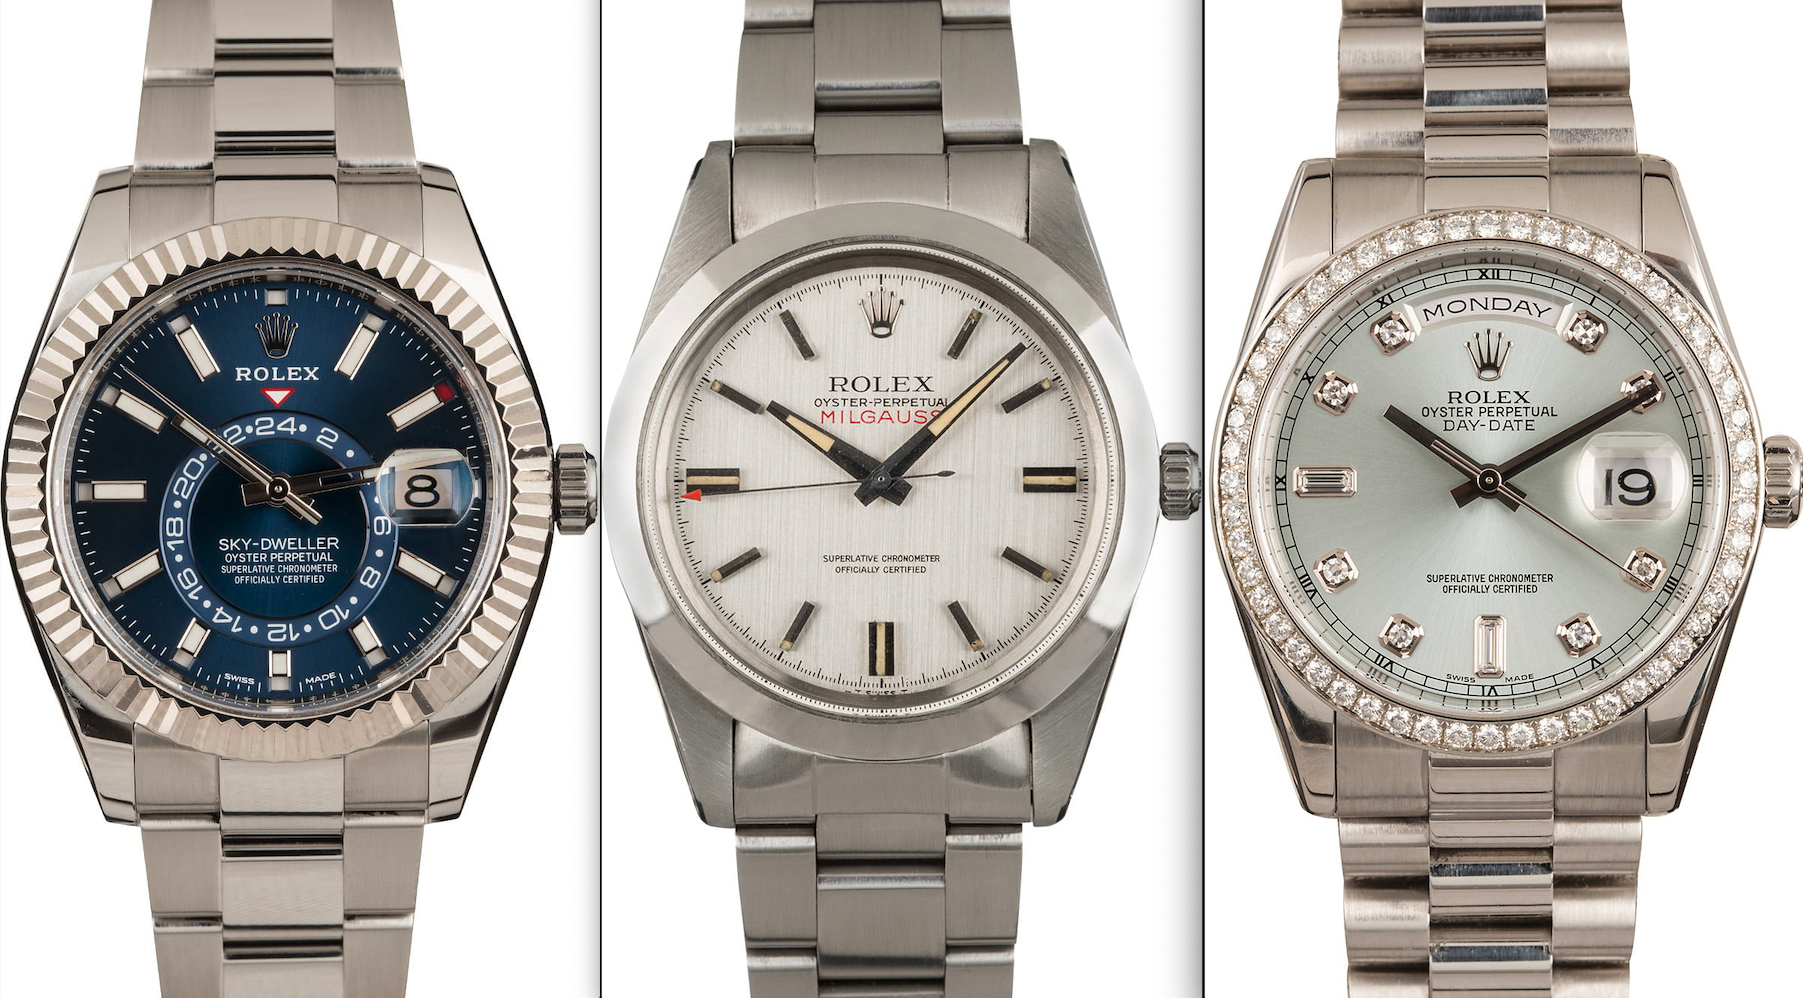 $20k - 25k Rolex Mothers Day Gift Ideas